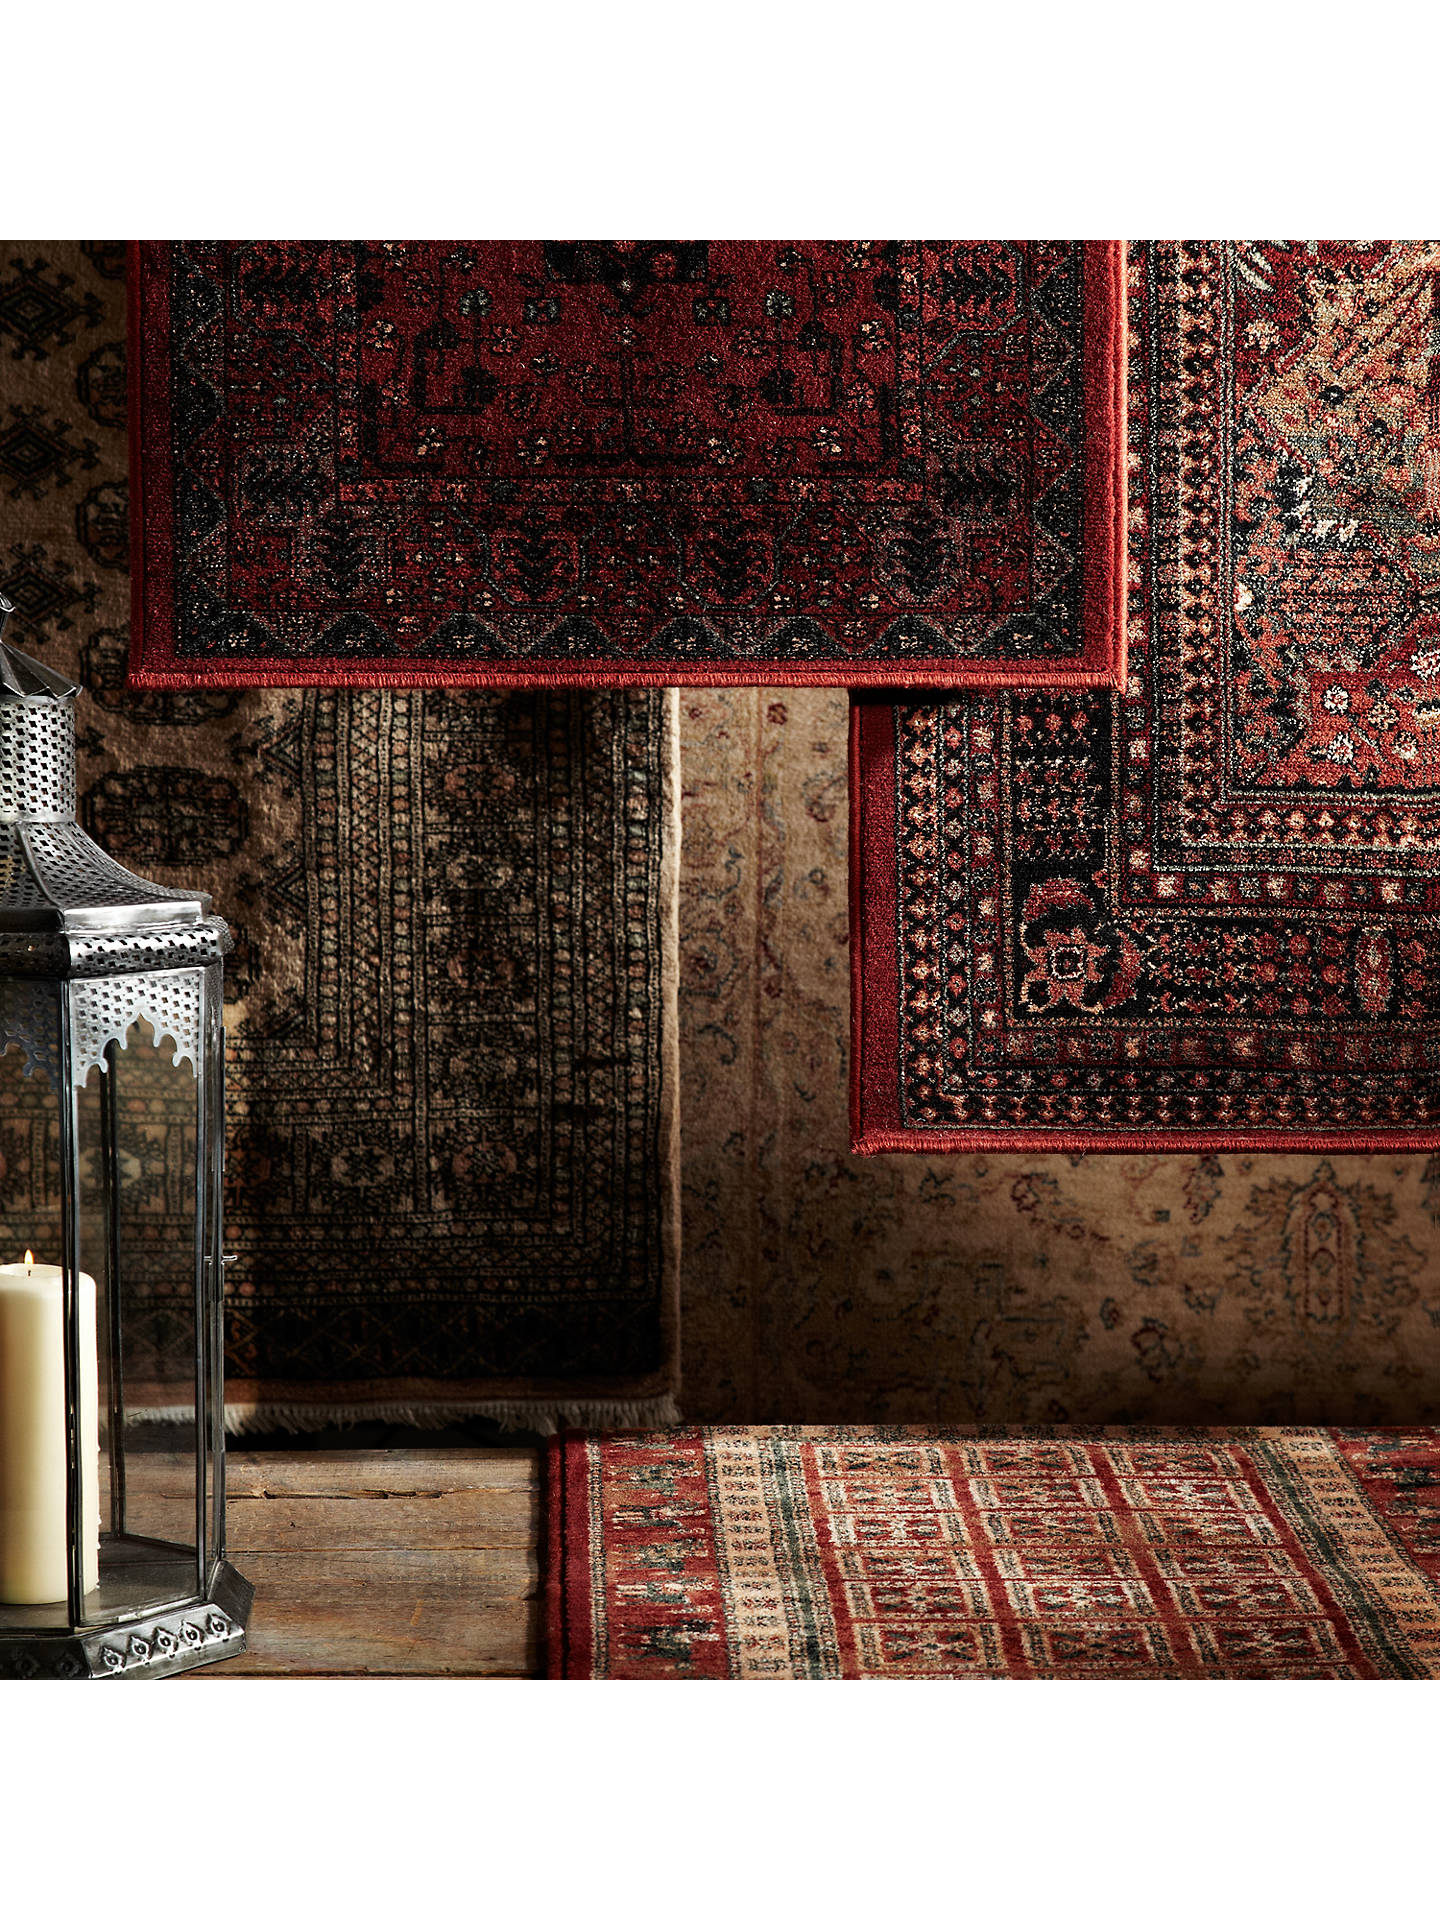 BuyJohn Lewis & Partners Royal Heritage Herati Rugs, Red, L160 x W80cm Online at johnlewis.com